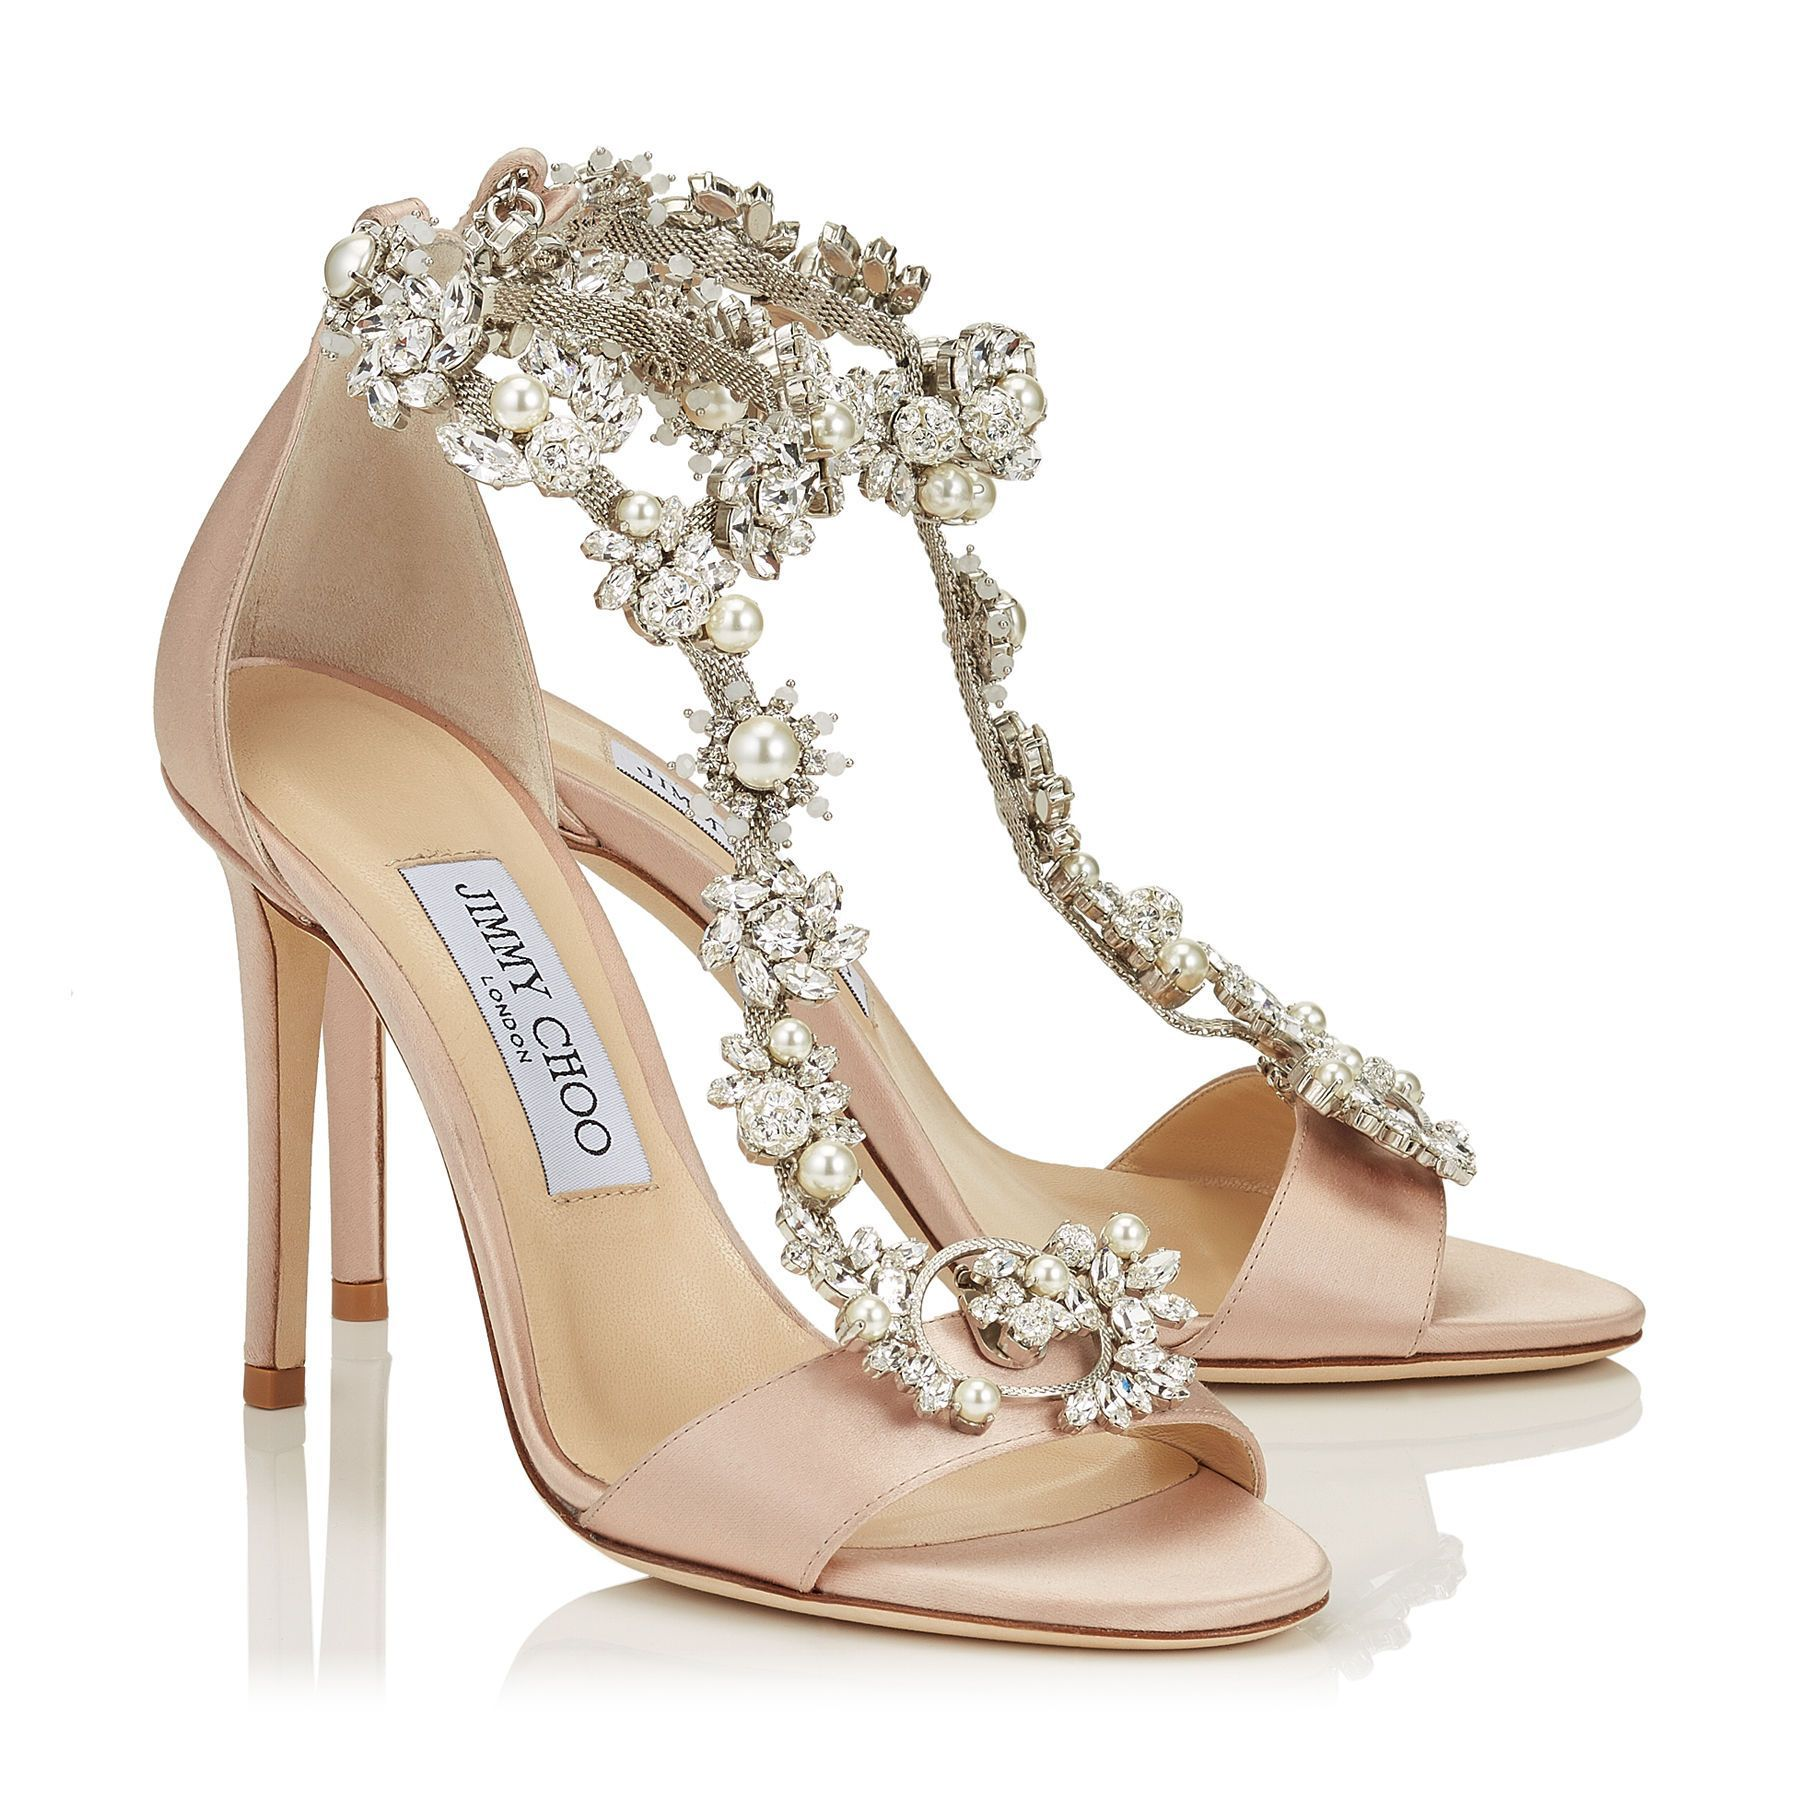 cbc95445054f Dusty Rose Satin Sandals with Crystal Mix Anklet